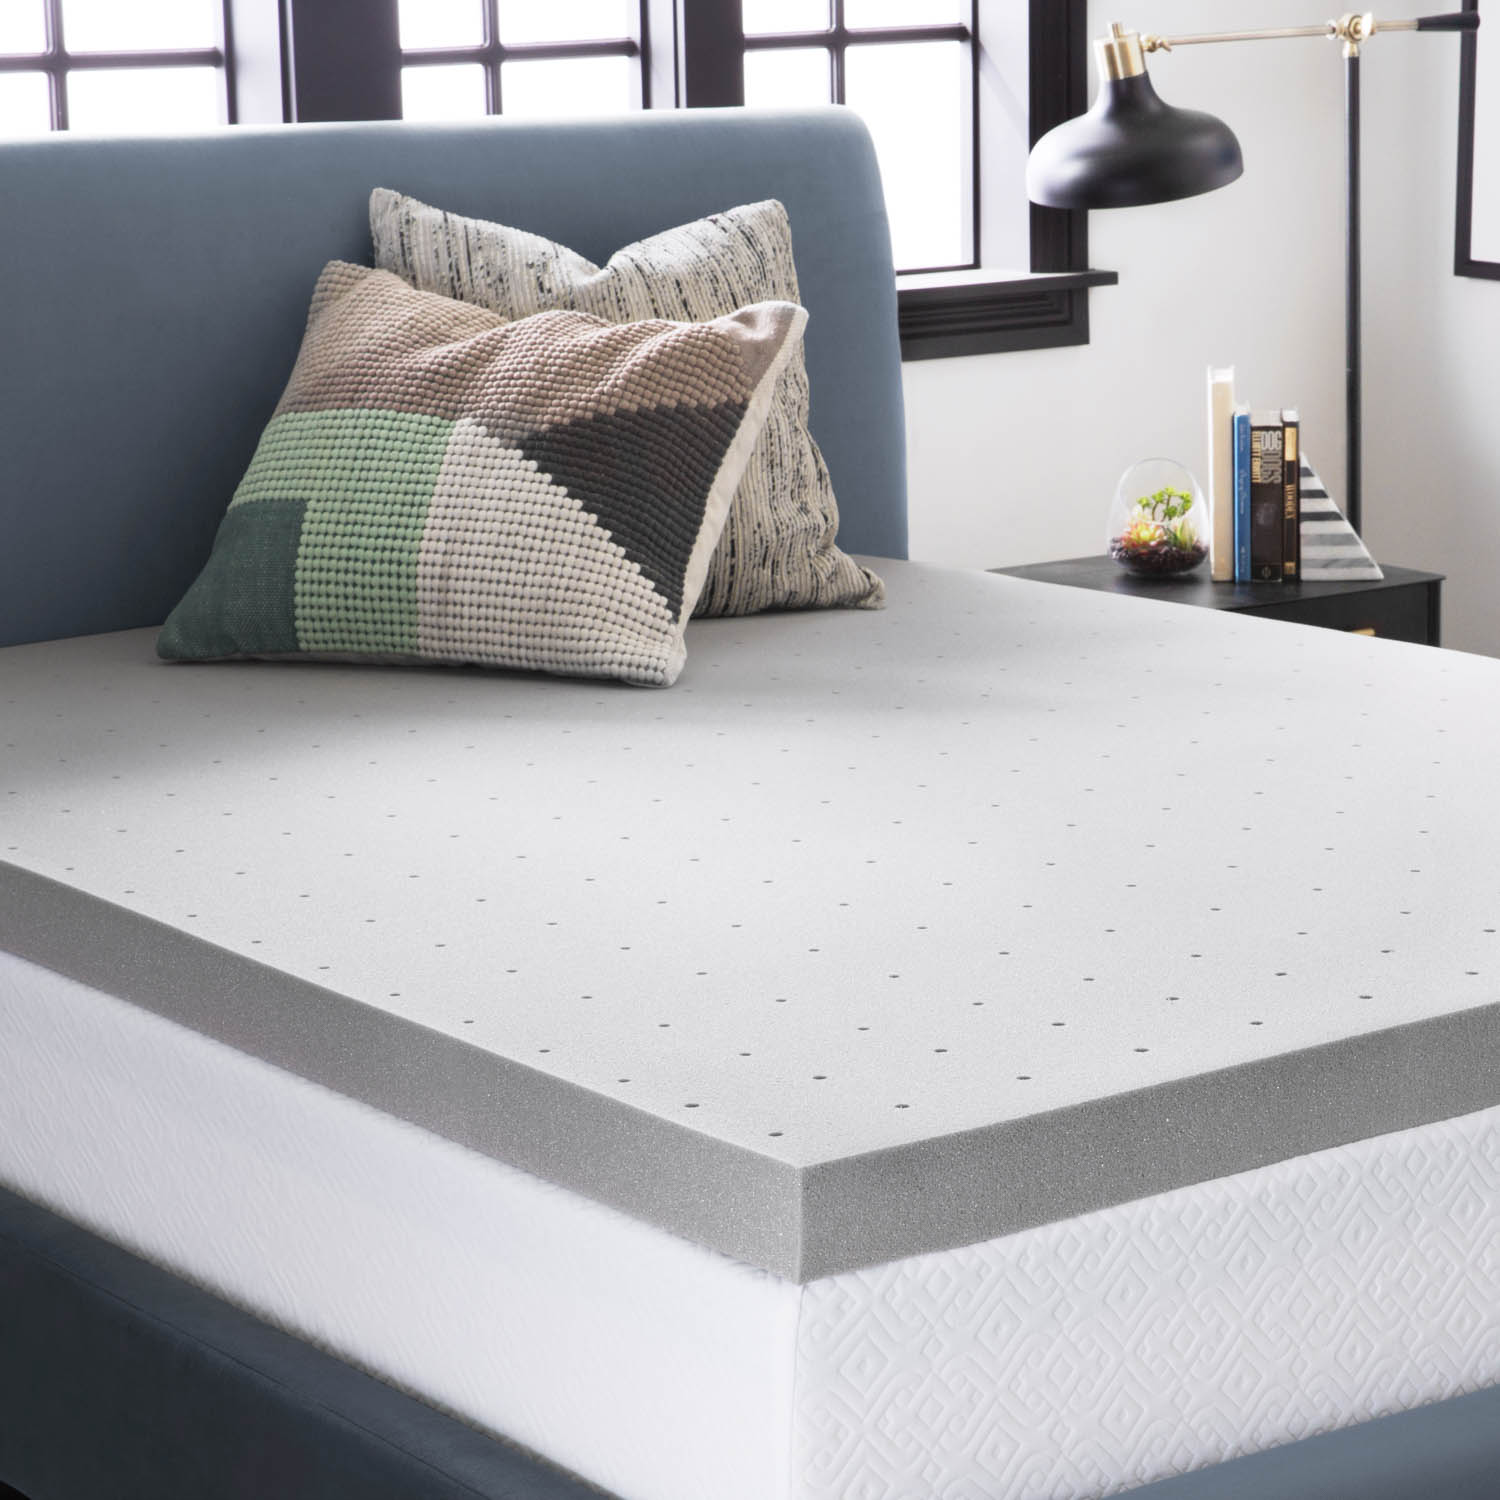 Bedroom Mattress Memory Foam Latex Hybrid Mattresses Lucid